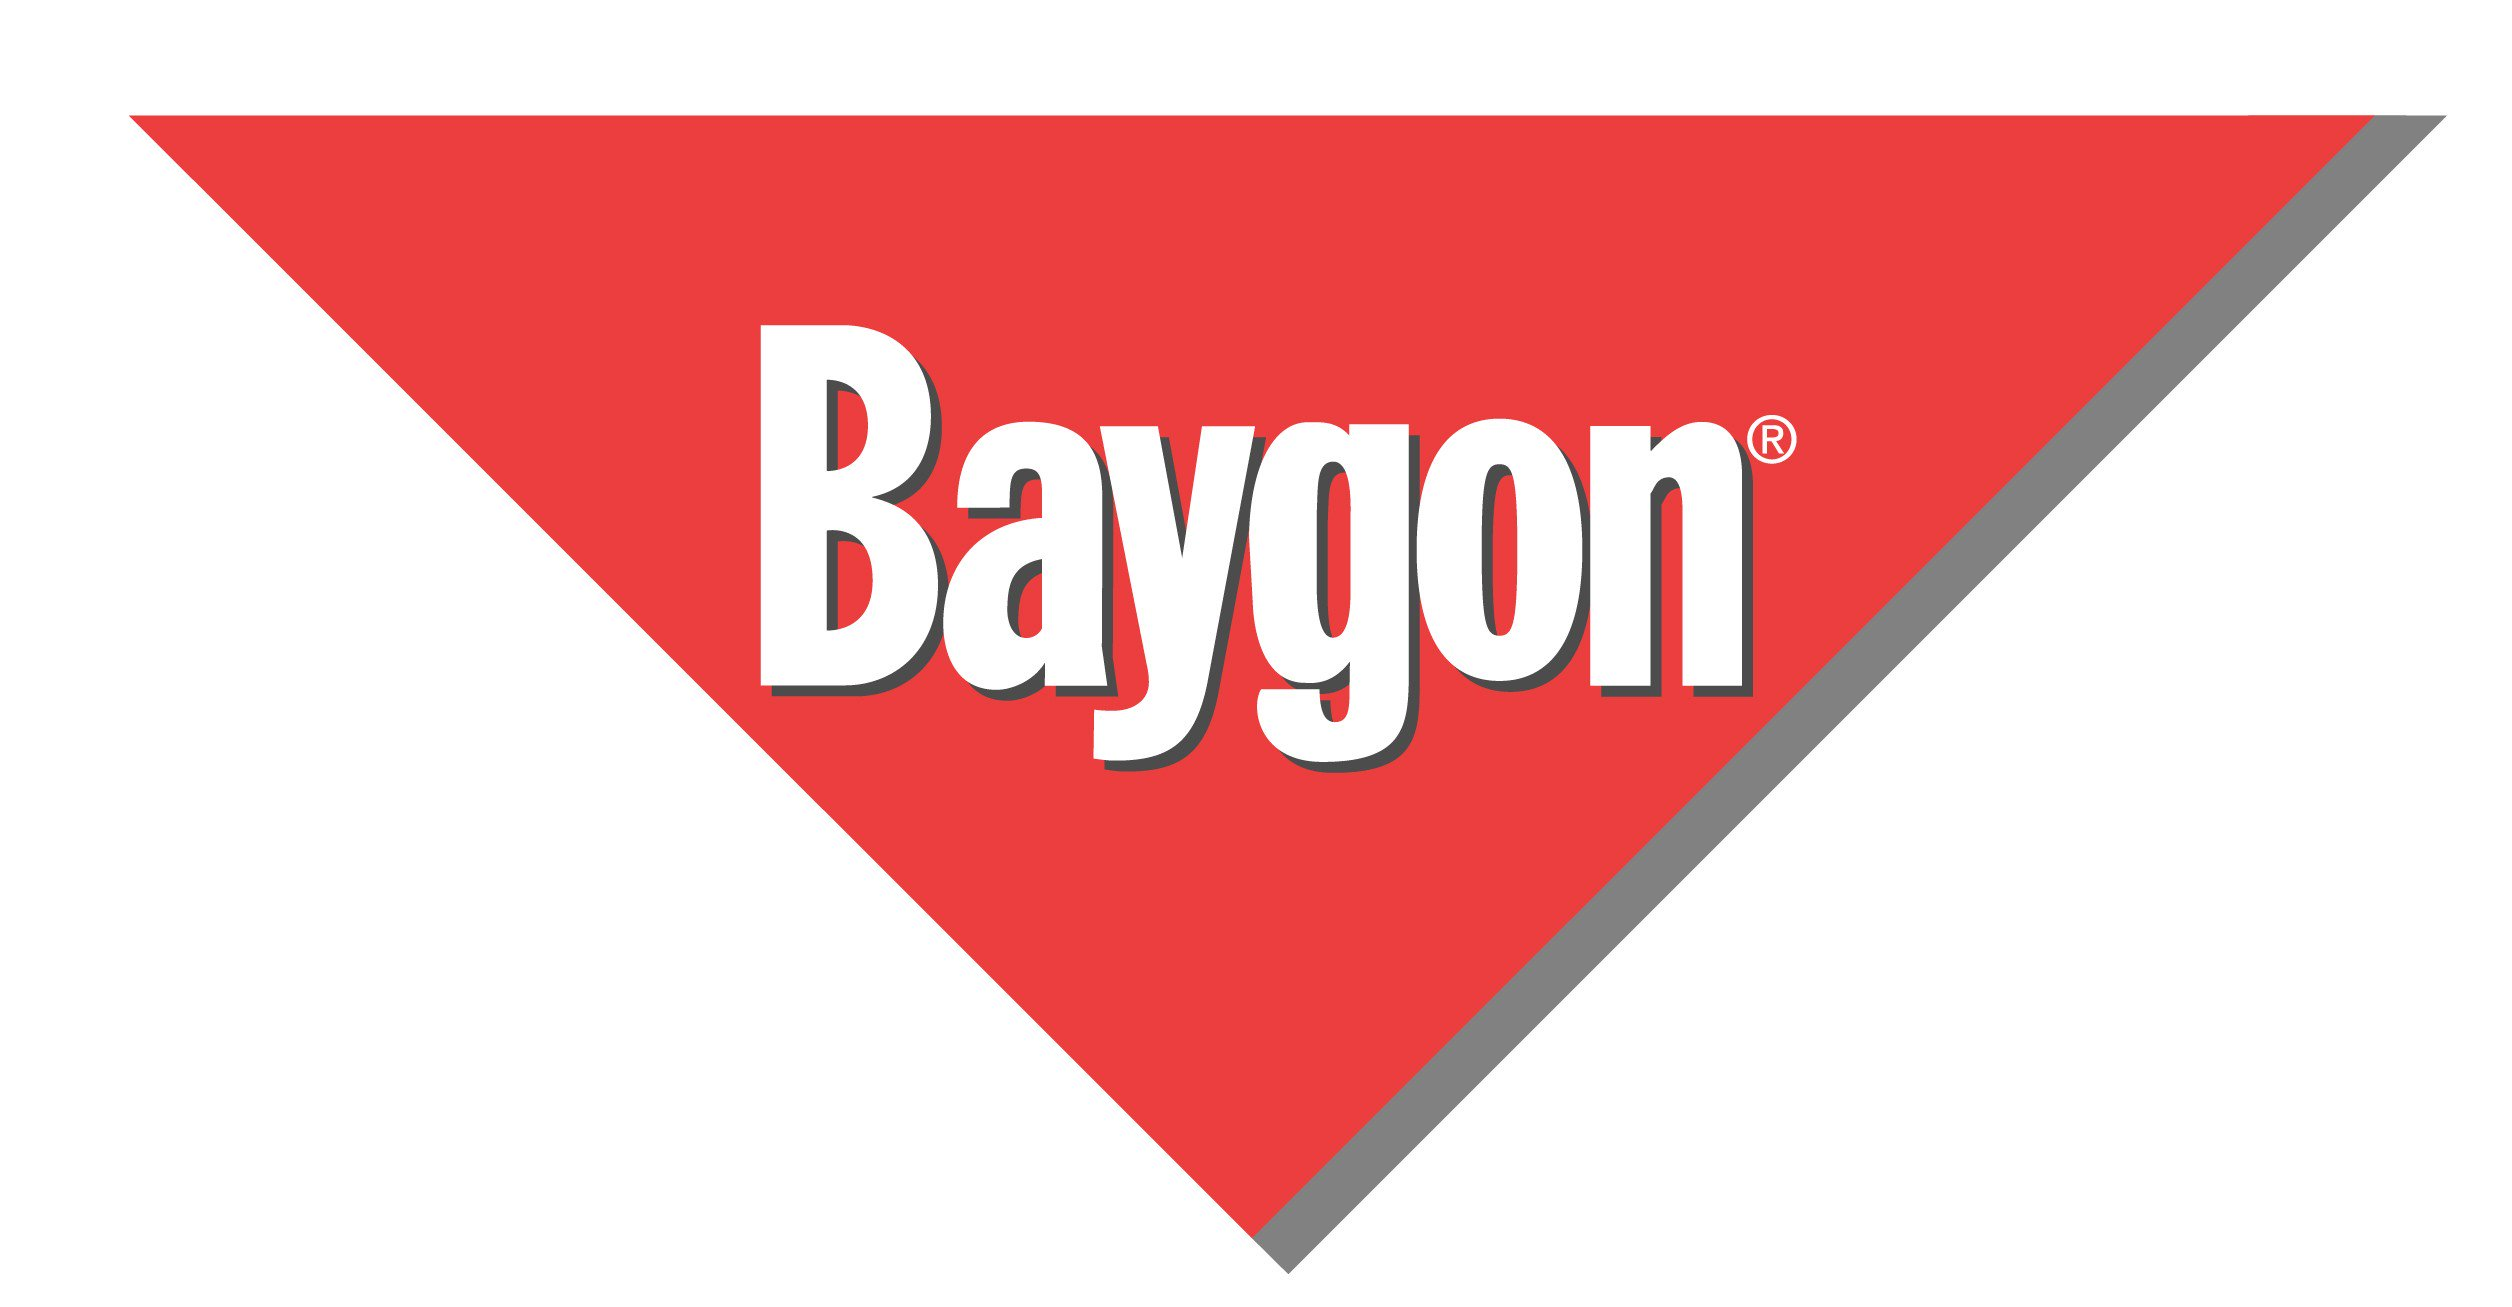 BAYGON products